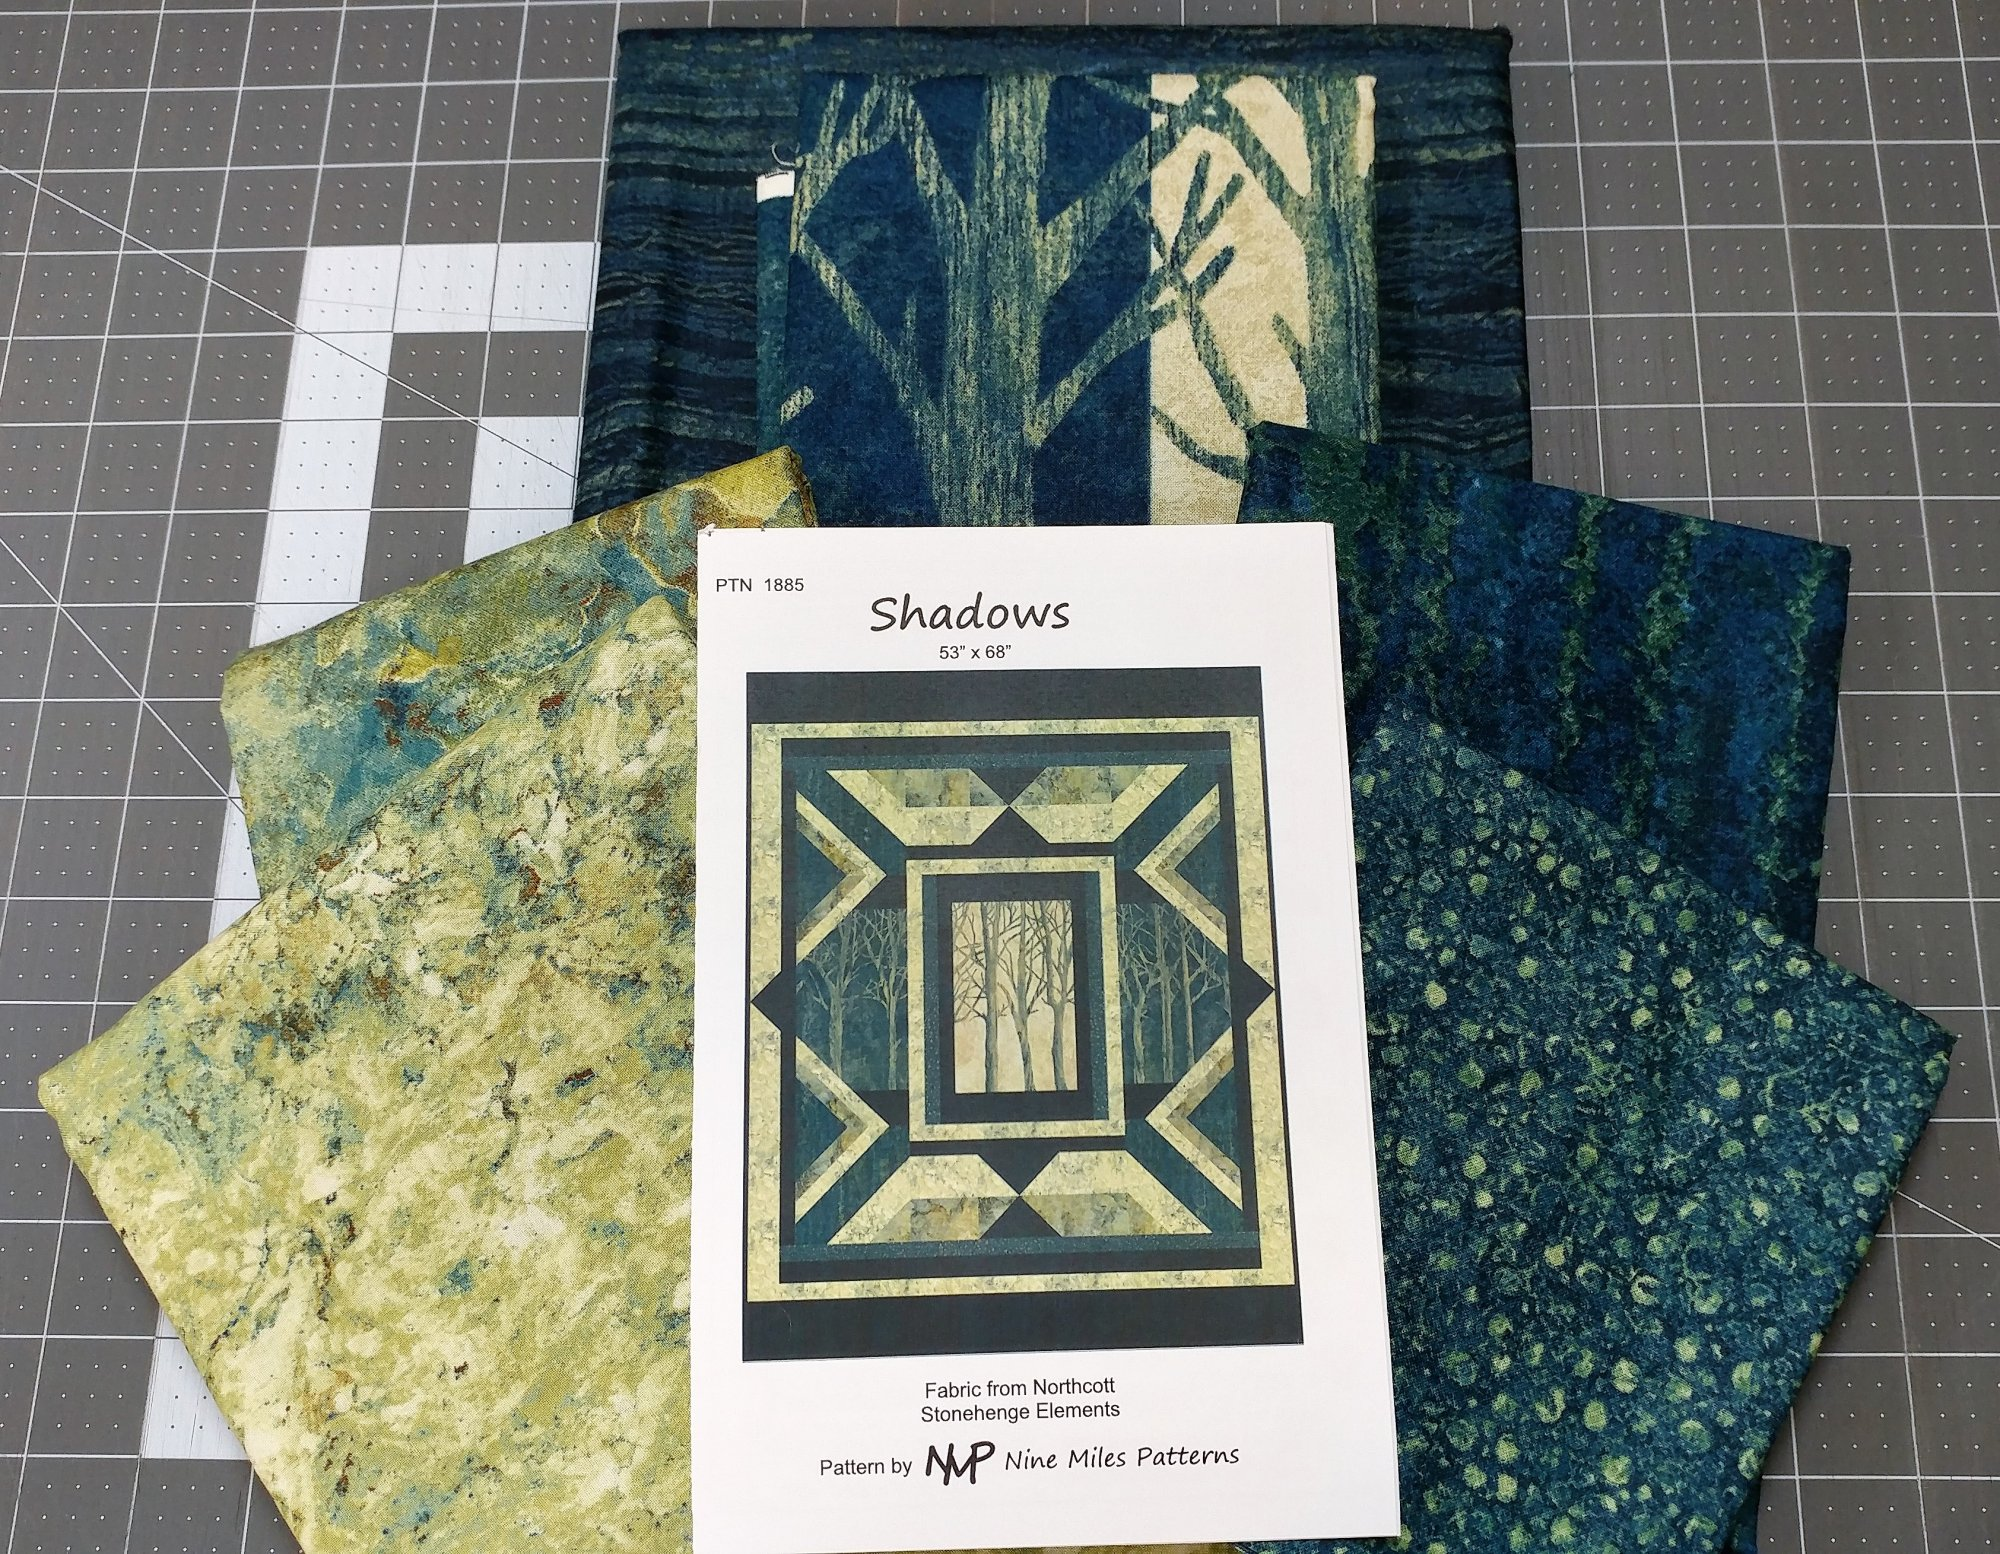 Shadows Fabric Kit, Fabric from Northcott, Pattern by Nine Miles Patterns : PTN-1885-Kit